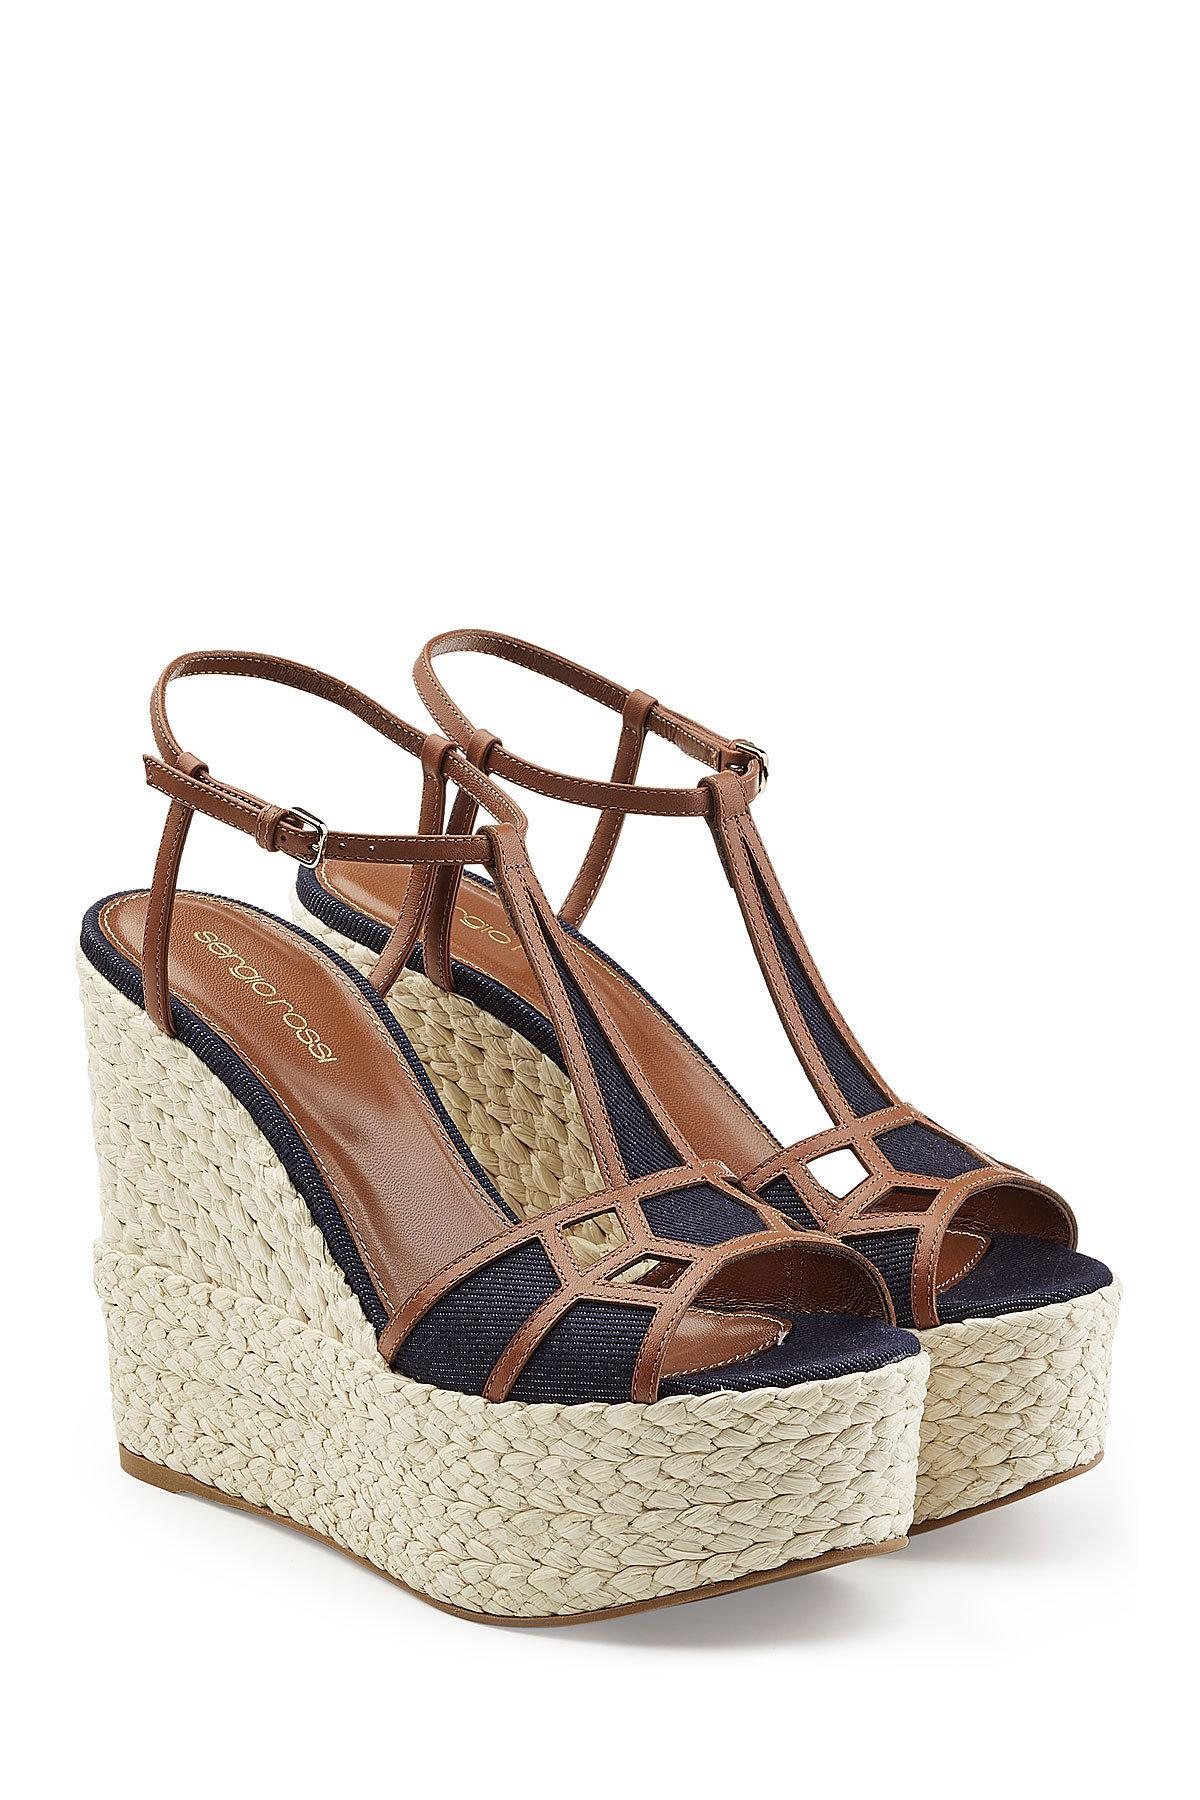 31ef74eef21 Lyst - Sergio Rossi Leather And Denim Wedge Sandals in Blue